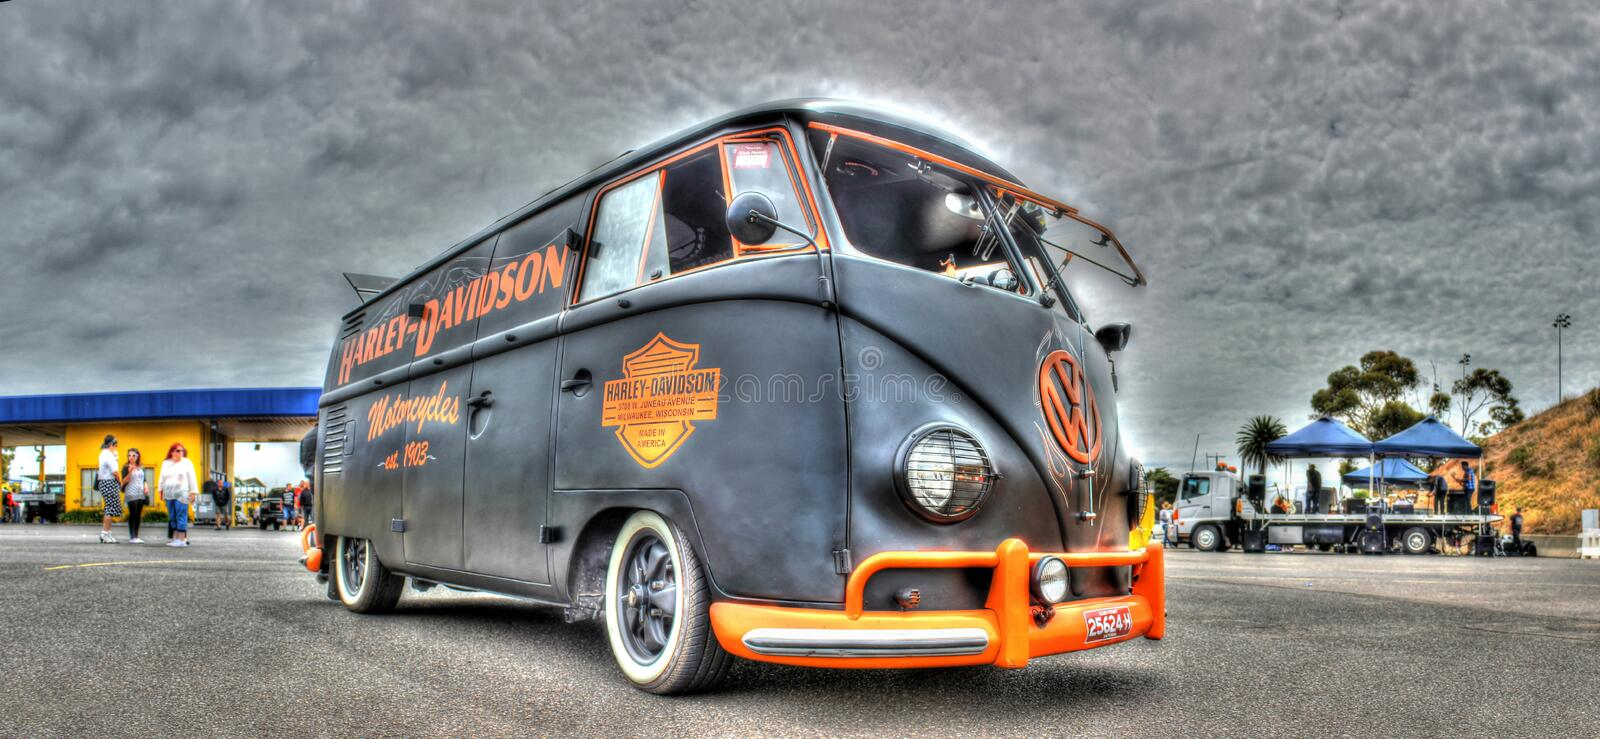 VW Kombi painted in Harley Davidson Colors. A custom painted VW Kombi in the black and orange colors of Harley Davidson motorcycles on display at car show held stock photos